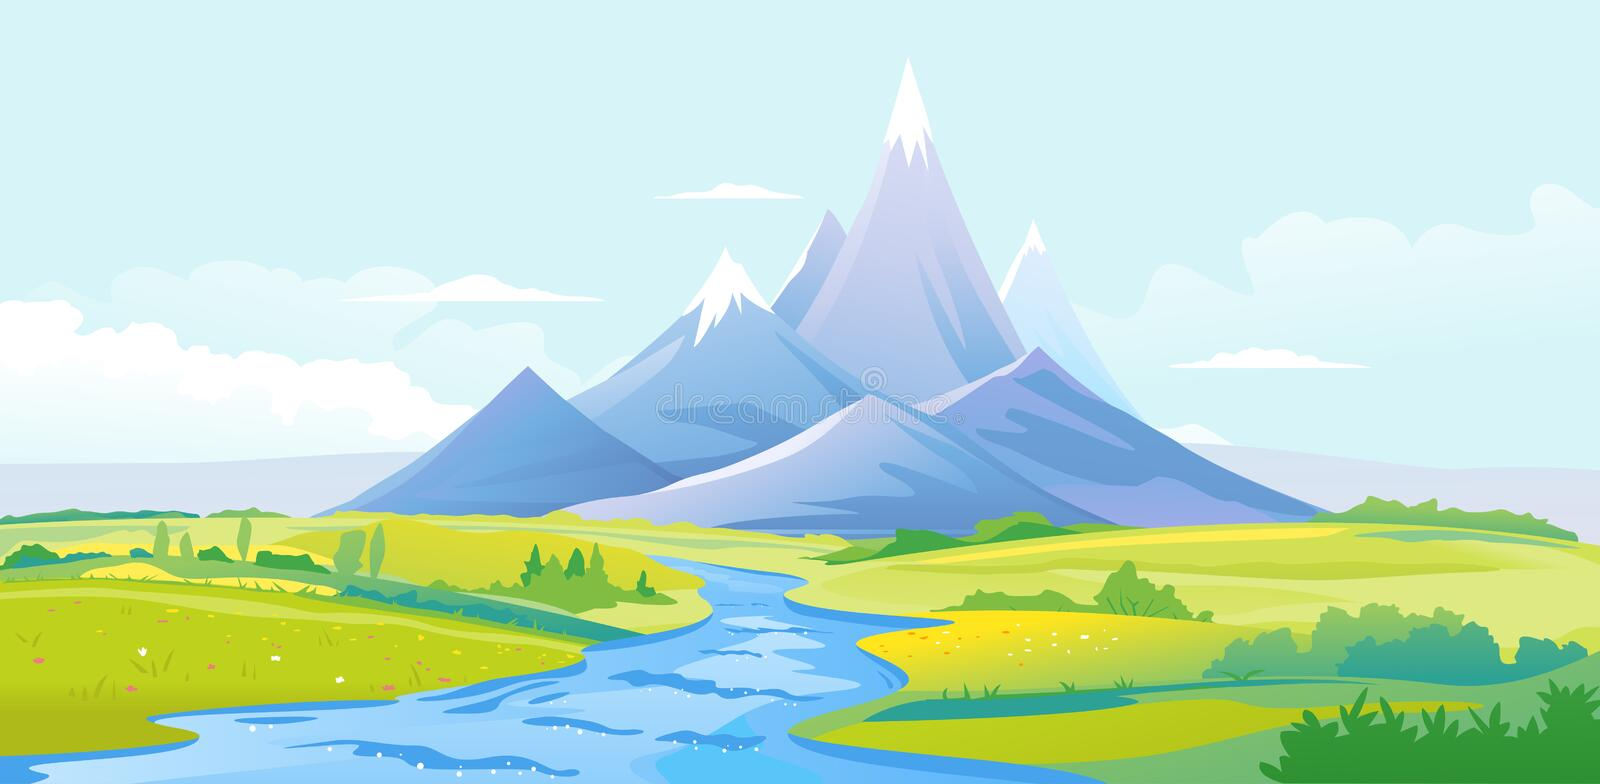 River valley in mountains vector illustration